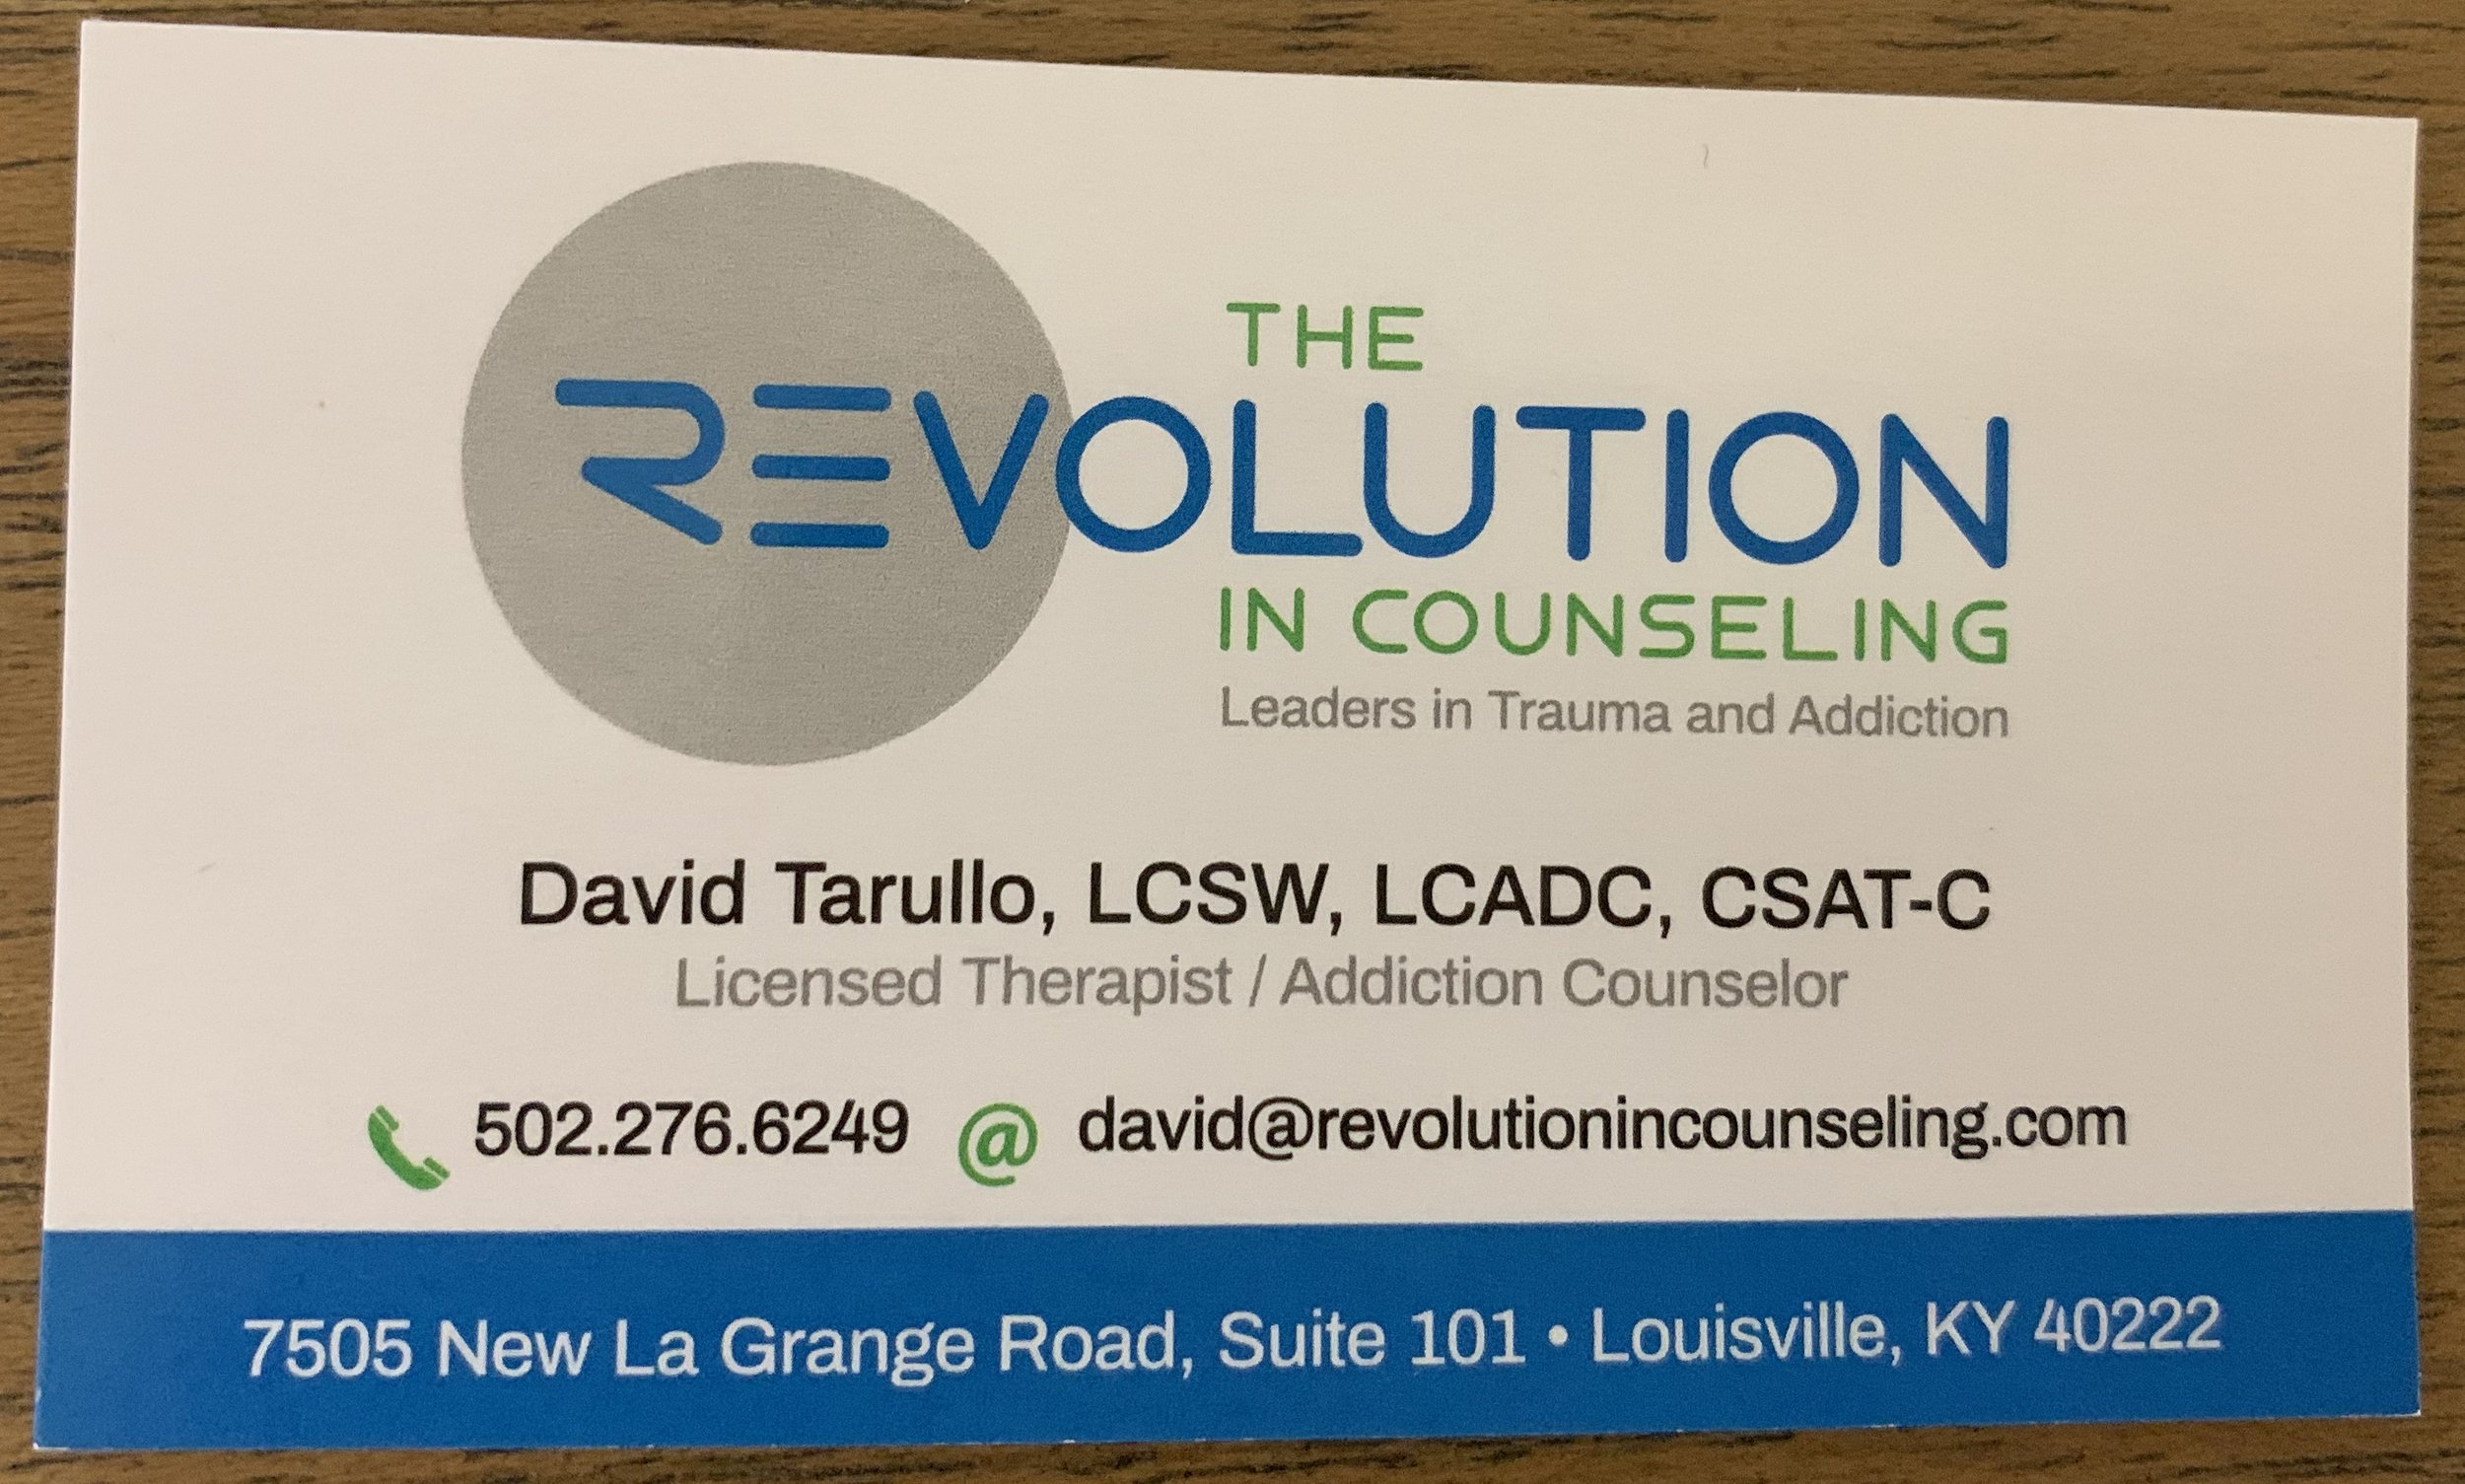 The Revolution in Counseling, Leaders in Trauma and Addiction Counseling